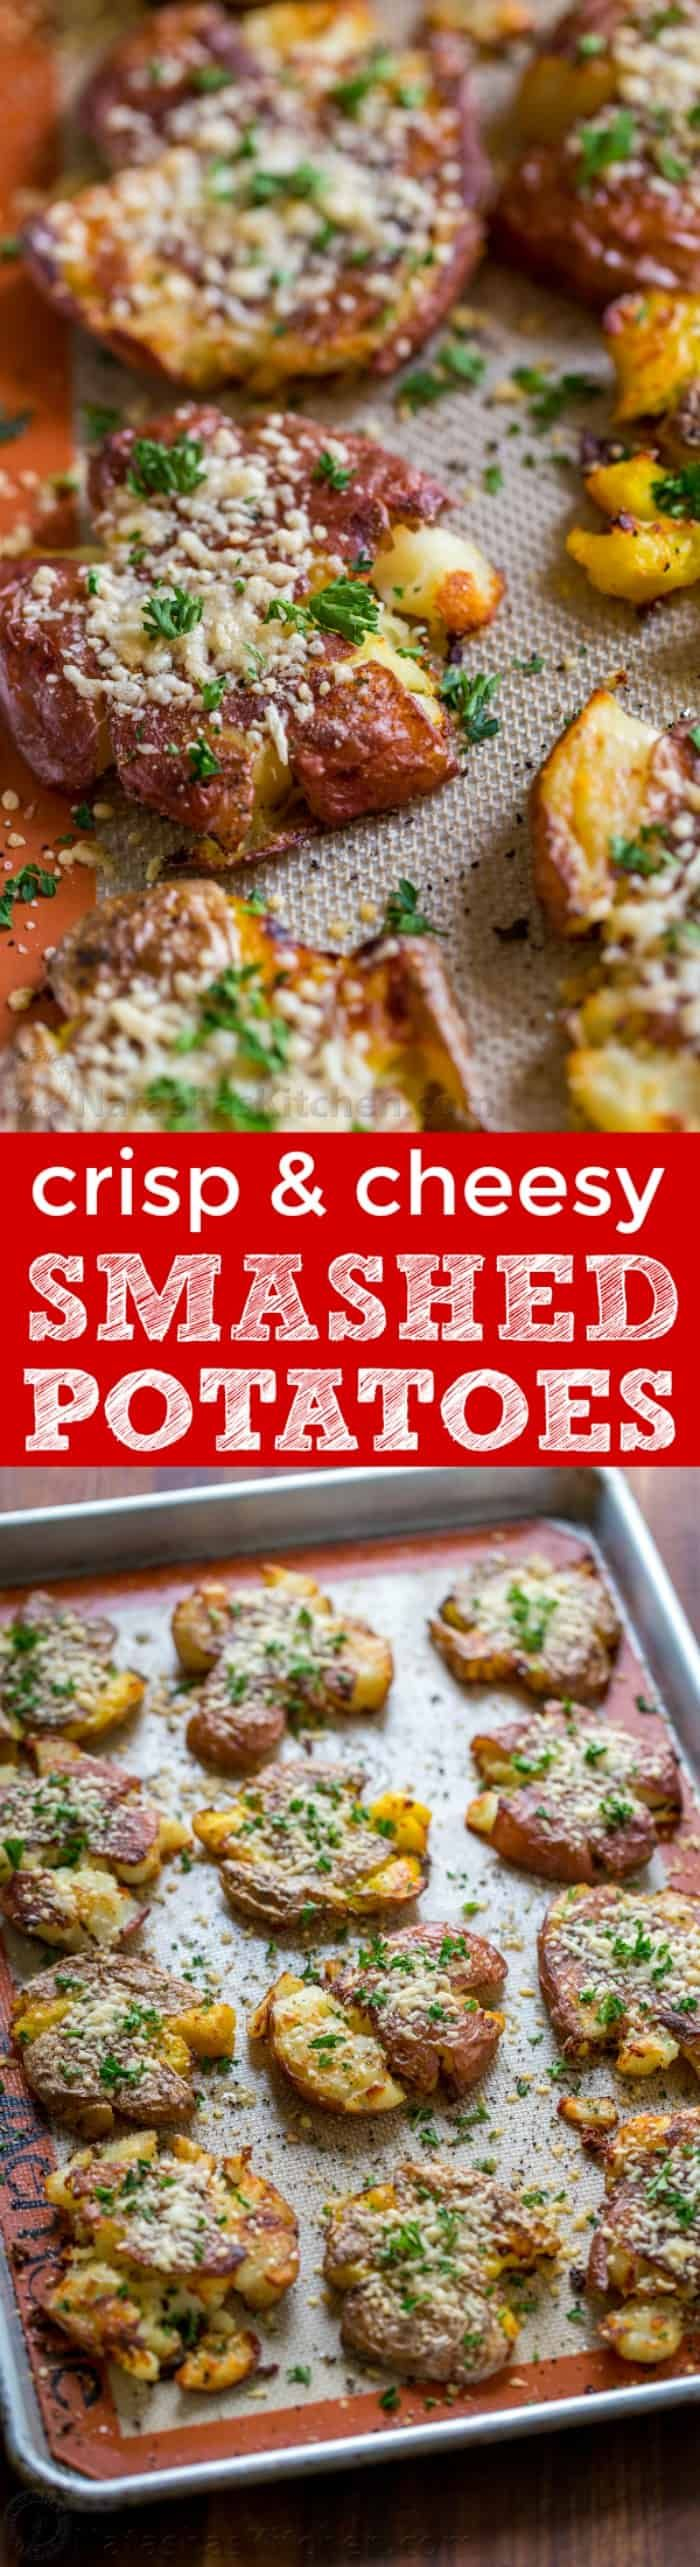 These cheesy smashed potatoes are crisp on the outside with a creamy center and irresistible cheesy crust. | natashaskitchen.com #smashedpotatoes #roastedpotatoes #redpotatoes